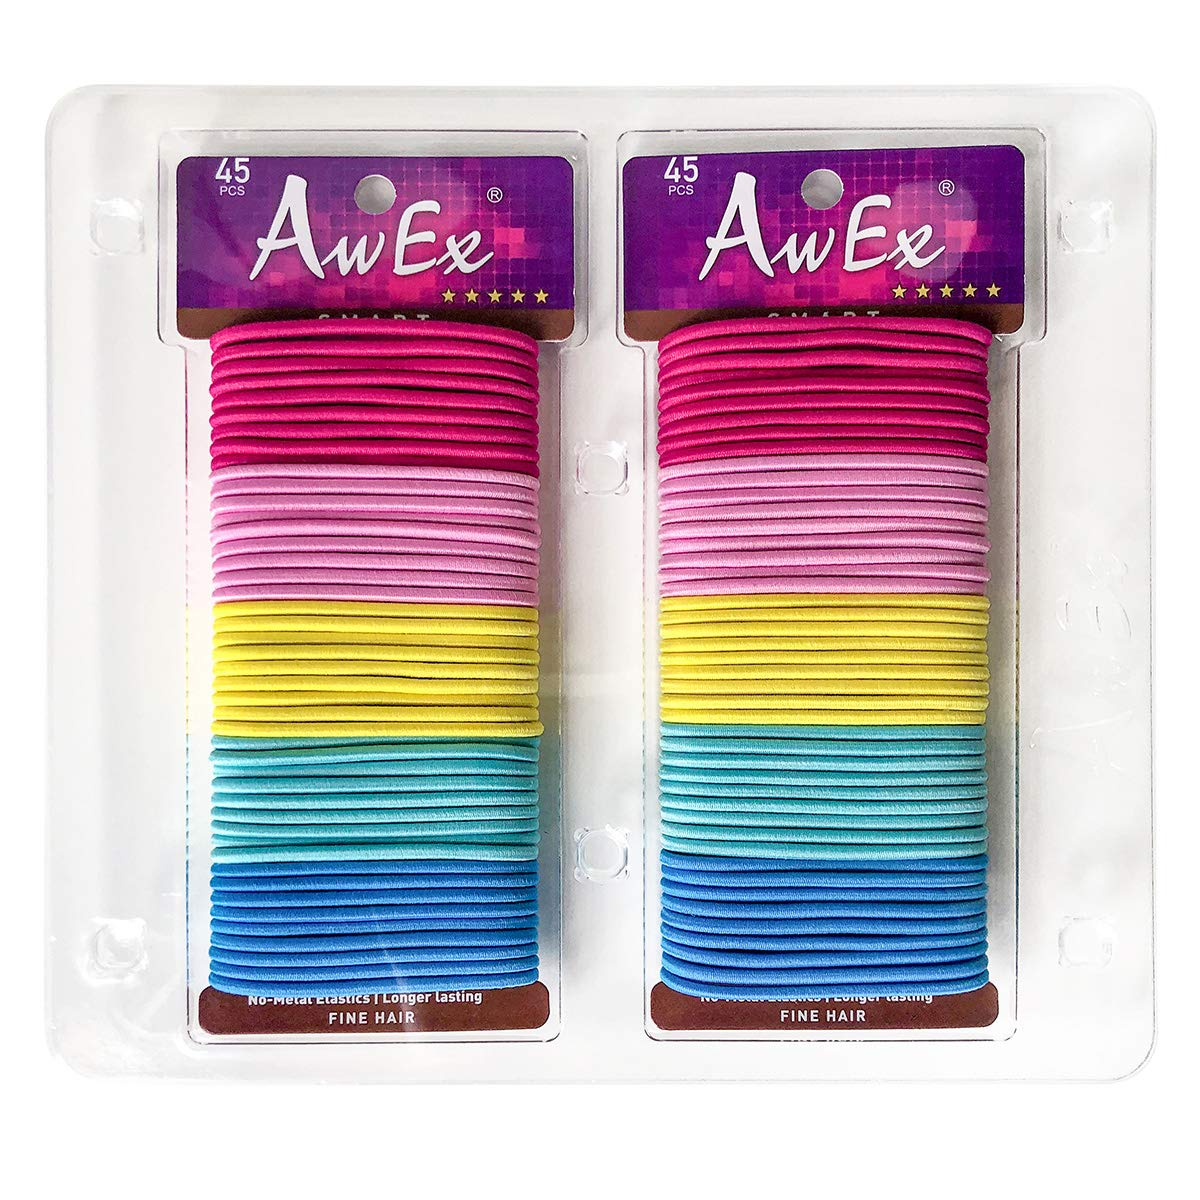 AwEx Color Hair Ties,90 PCS, 3 mm THIN Hair Bands for FINE Hair,No Metal Hair Elastics,Colorful Ponytail Holders